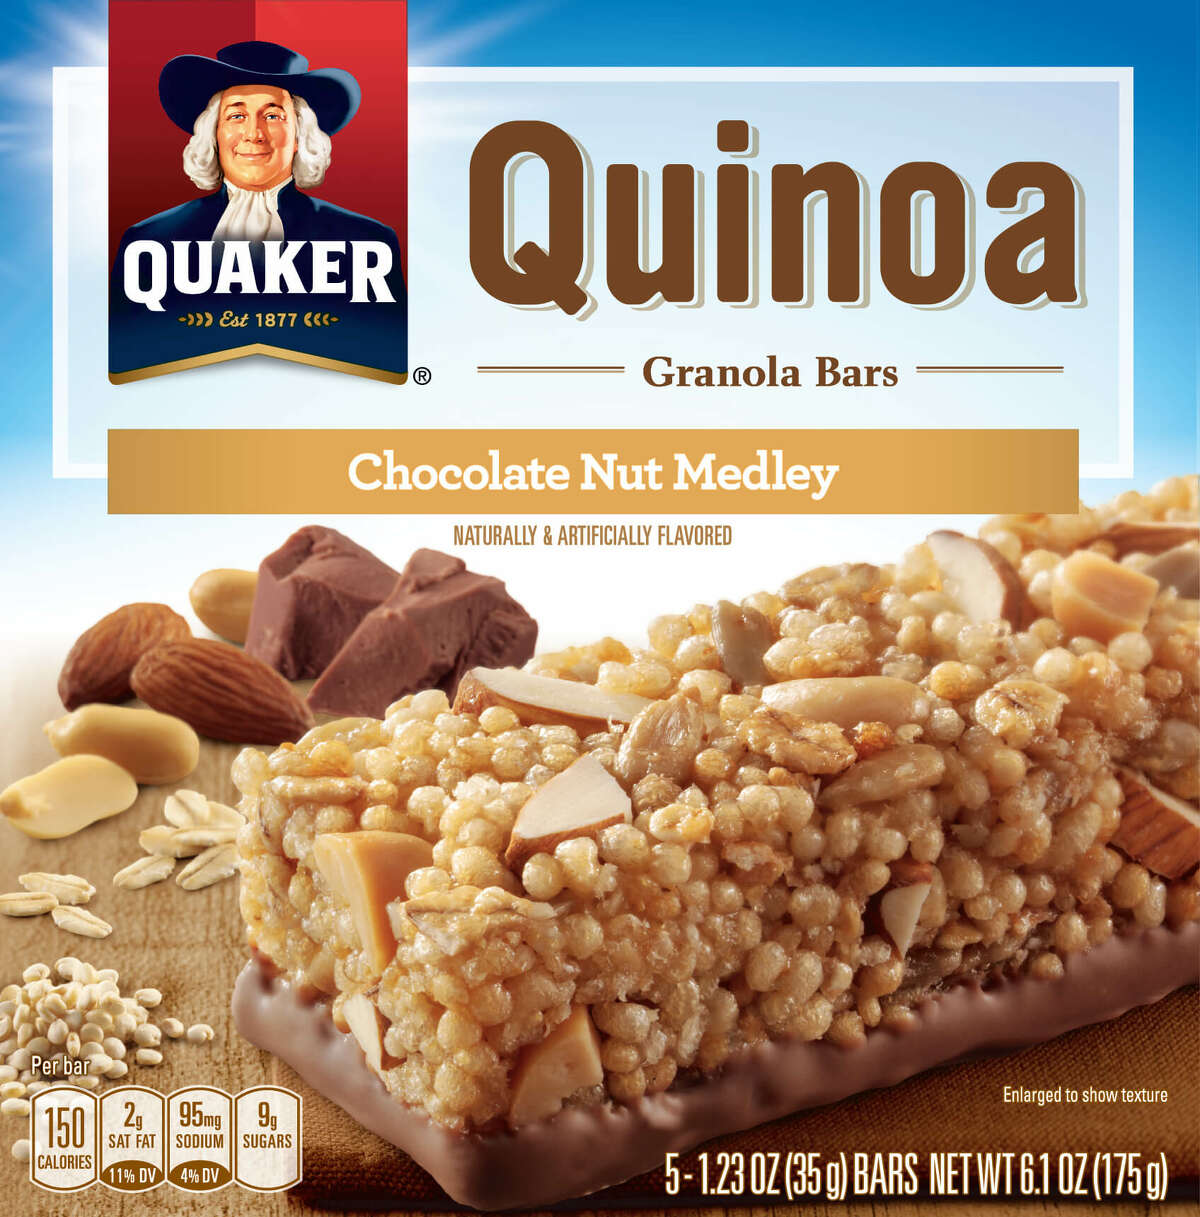 The Quaker Oats Company, a subsidiary of PepsiCo, Inc., has announced a voluntary recall of a small quantity of Quaker Quinoa Granola Bars after an ingredient supplier was found to have distributed sunflower kernels that may be contaminated with Listeria monocytogenes